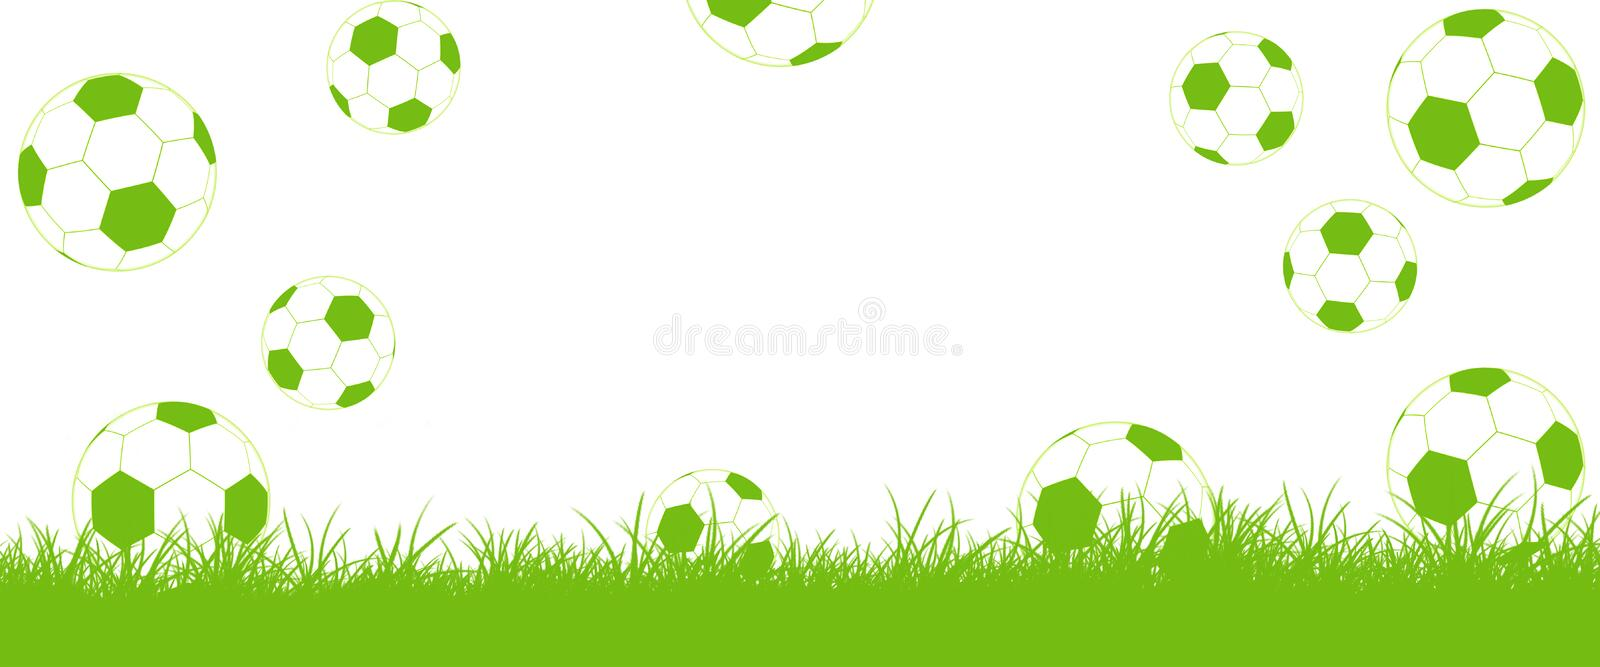 Footballs fly on lawn, Goal!. Background with free text for football Championship royalty free illustration